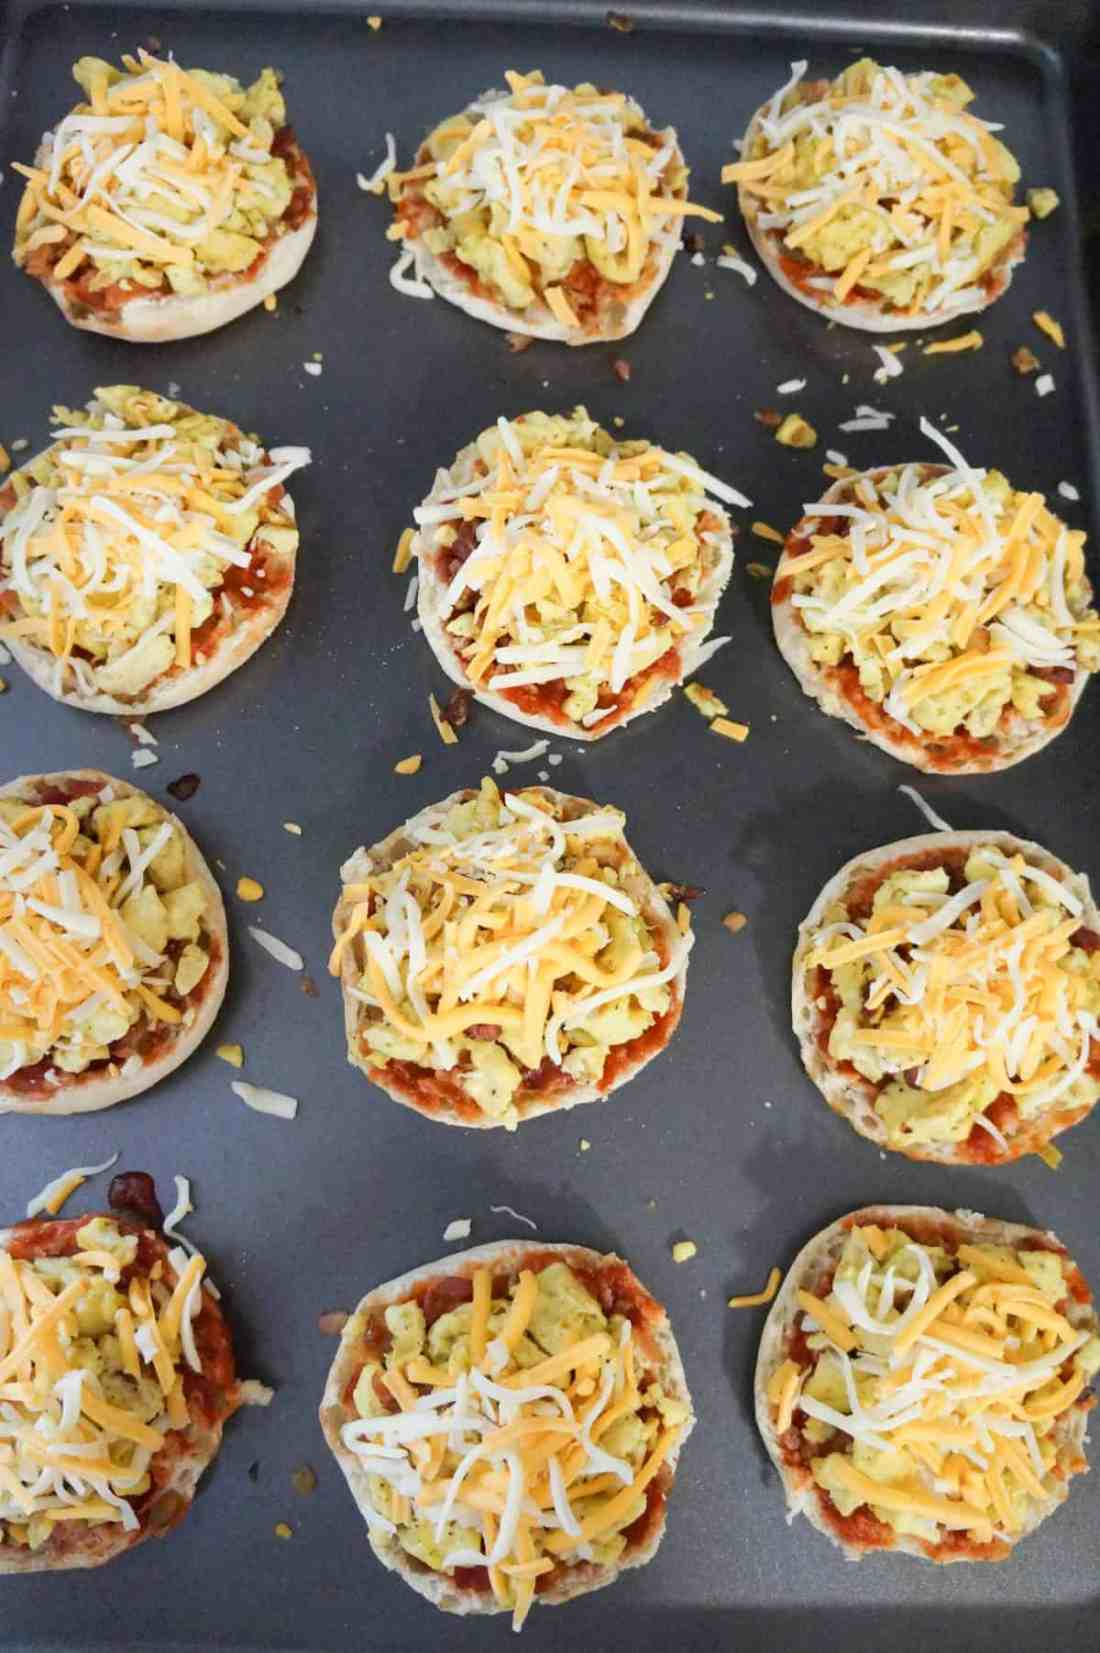 shredded cheese on top of breakfast pizzas before cooking